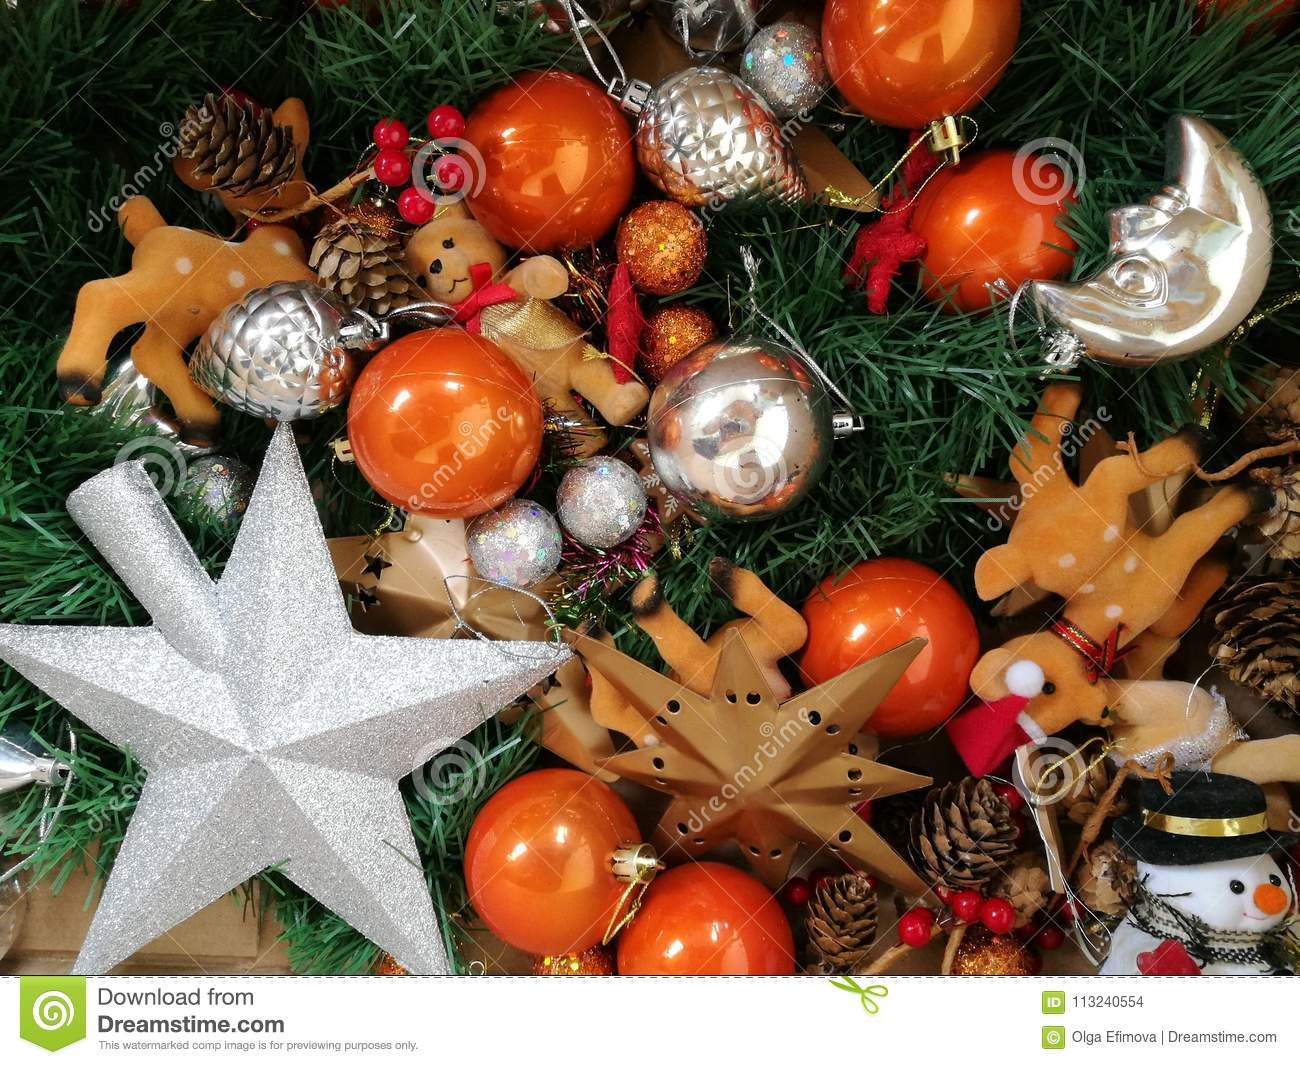 new year christmas tree decorations - Orange Christmas Tree Decorations